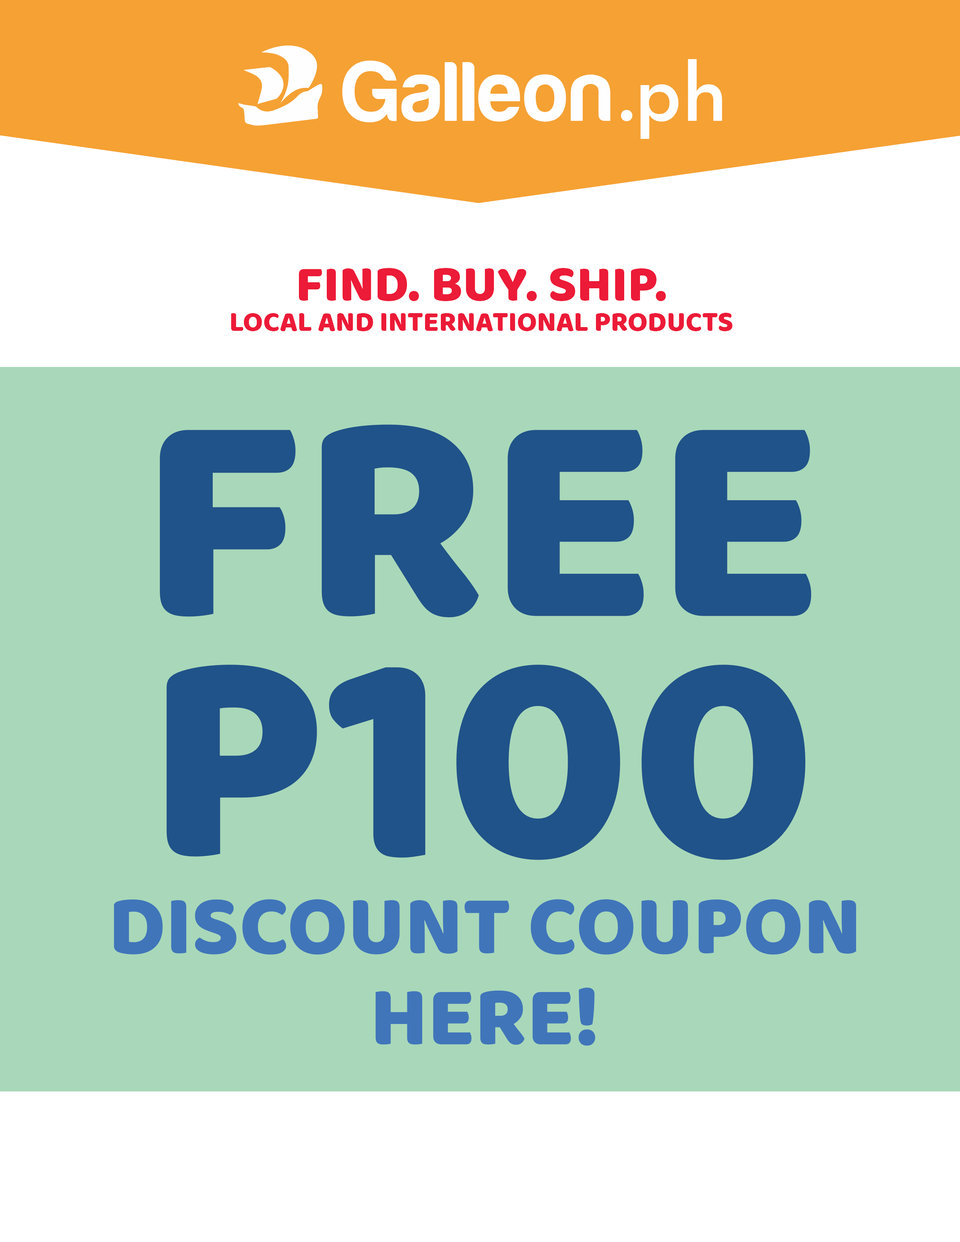 GalleonPH Free Php100